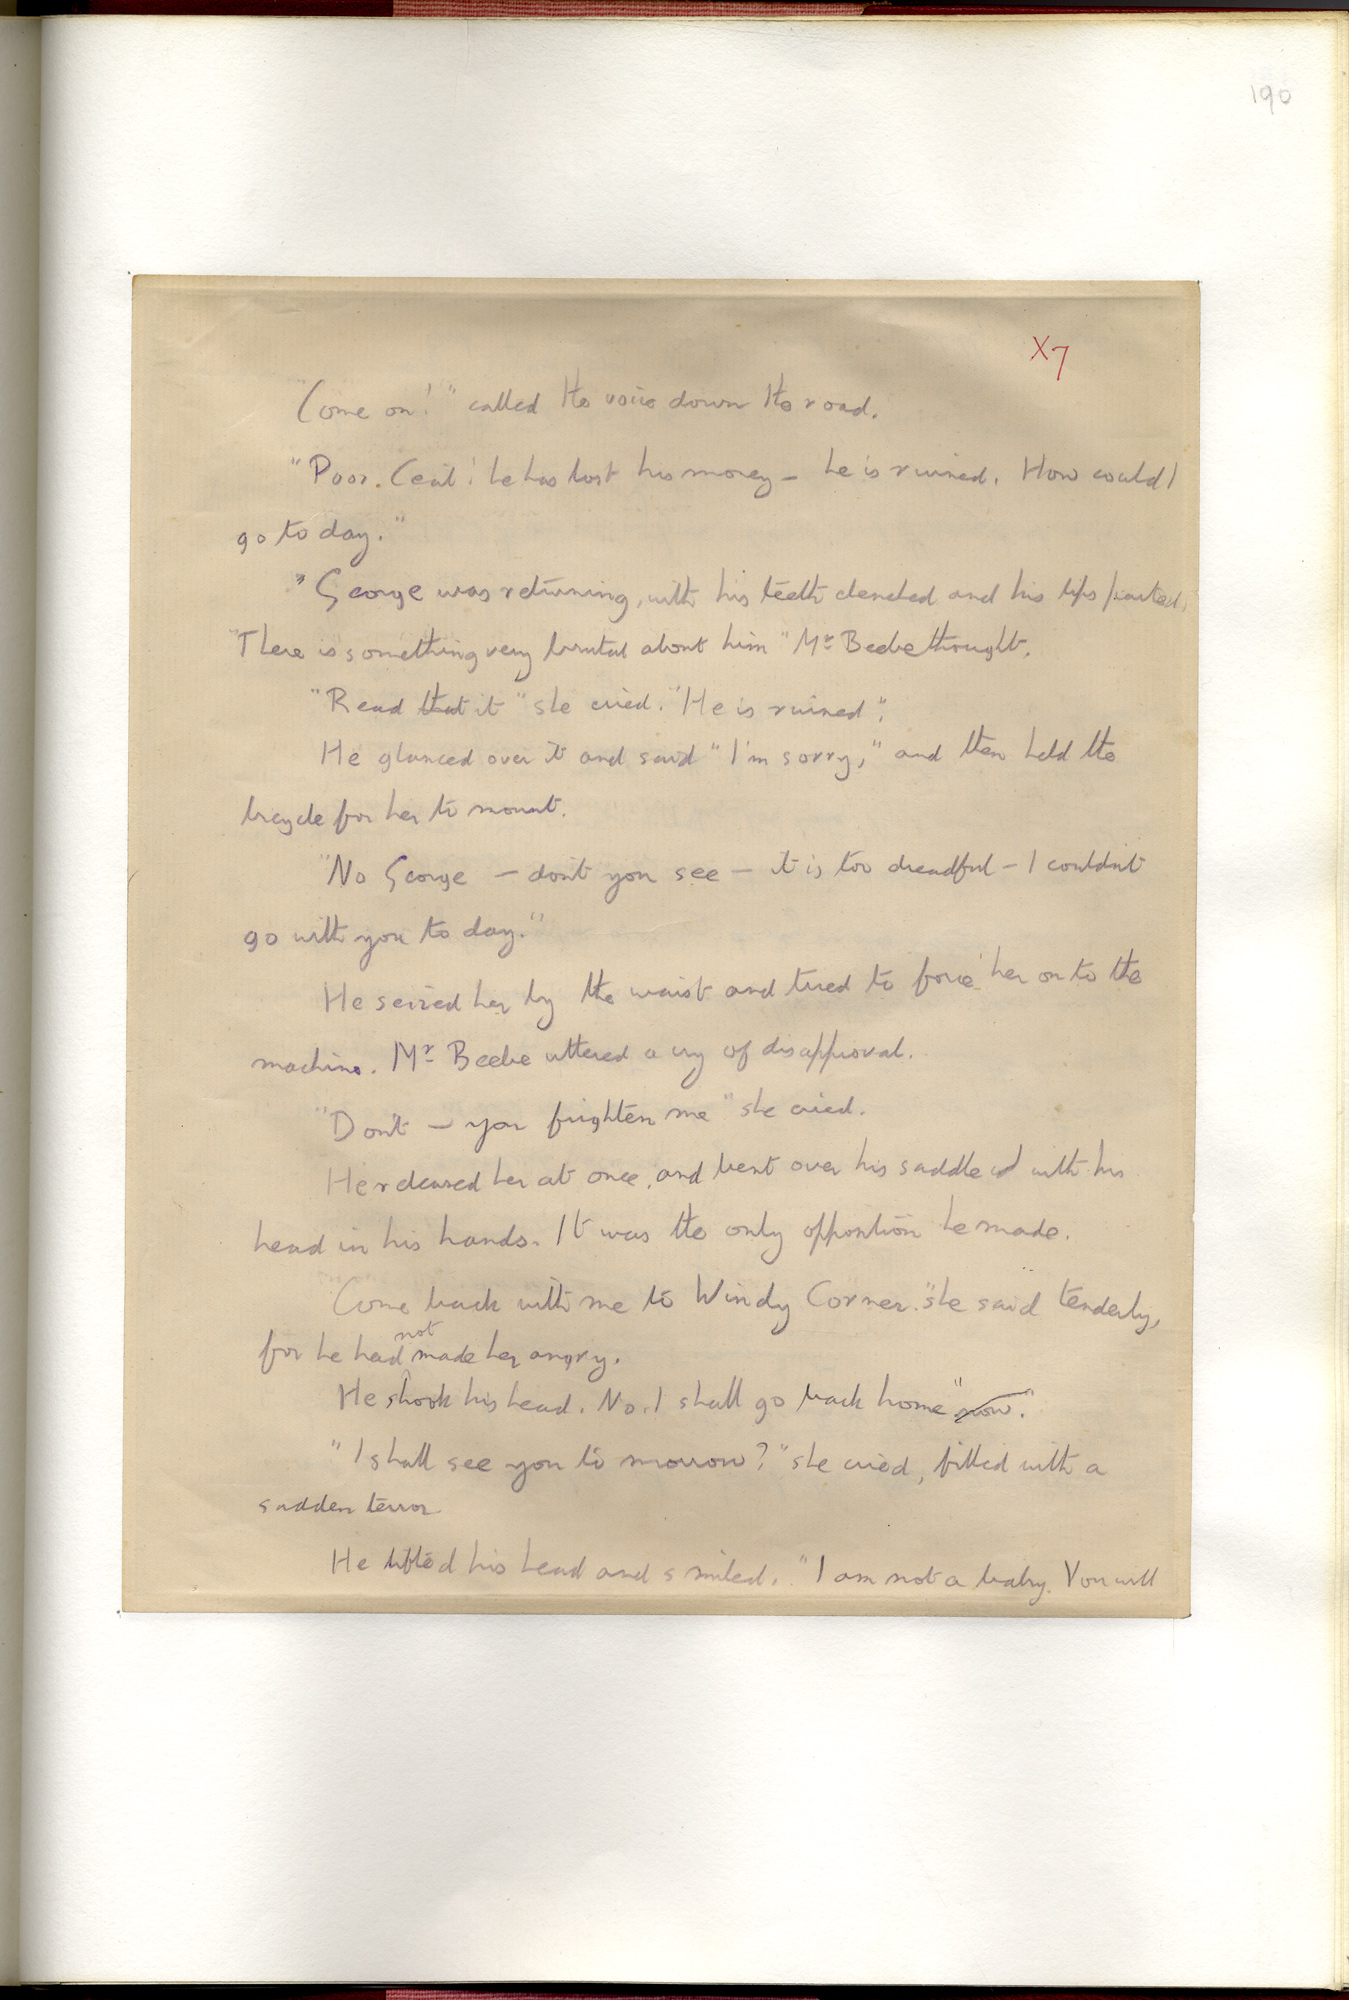 E M Forster's early draft of A Room with a View